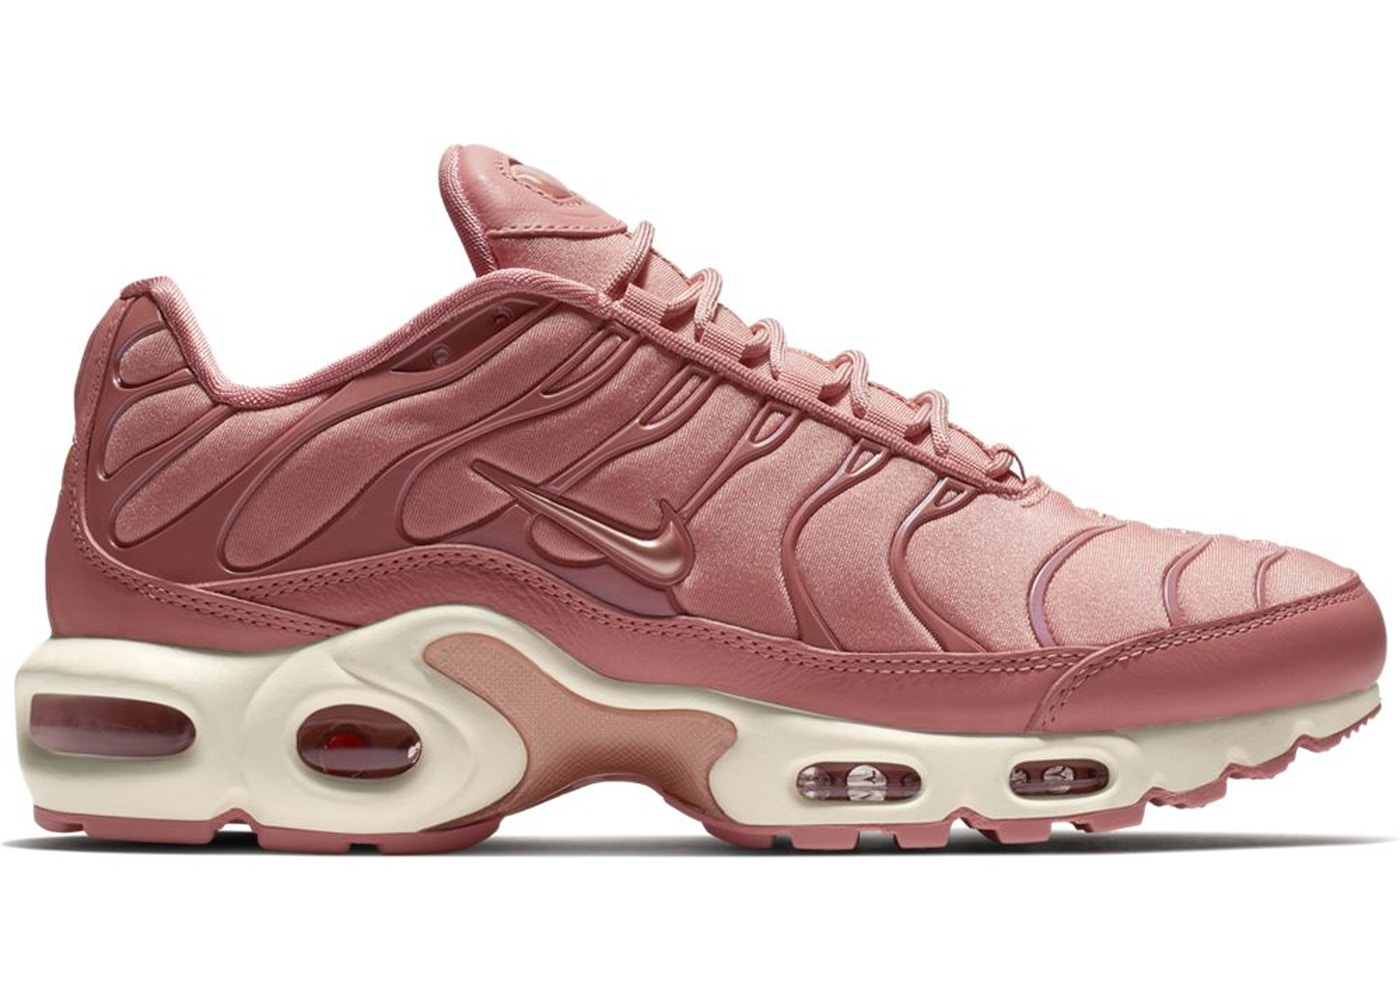 c4dd24f509 Sell. or Ask. Size: 6.5W. View All Bids. Air Max Plus Rust Pink ...